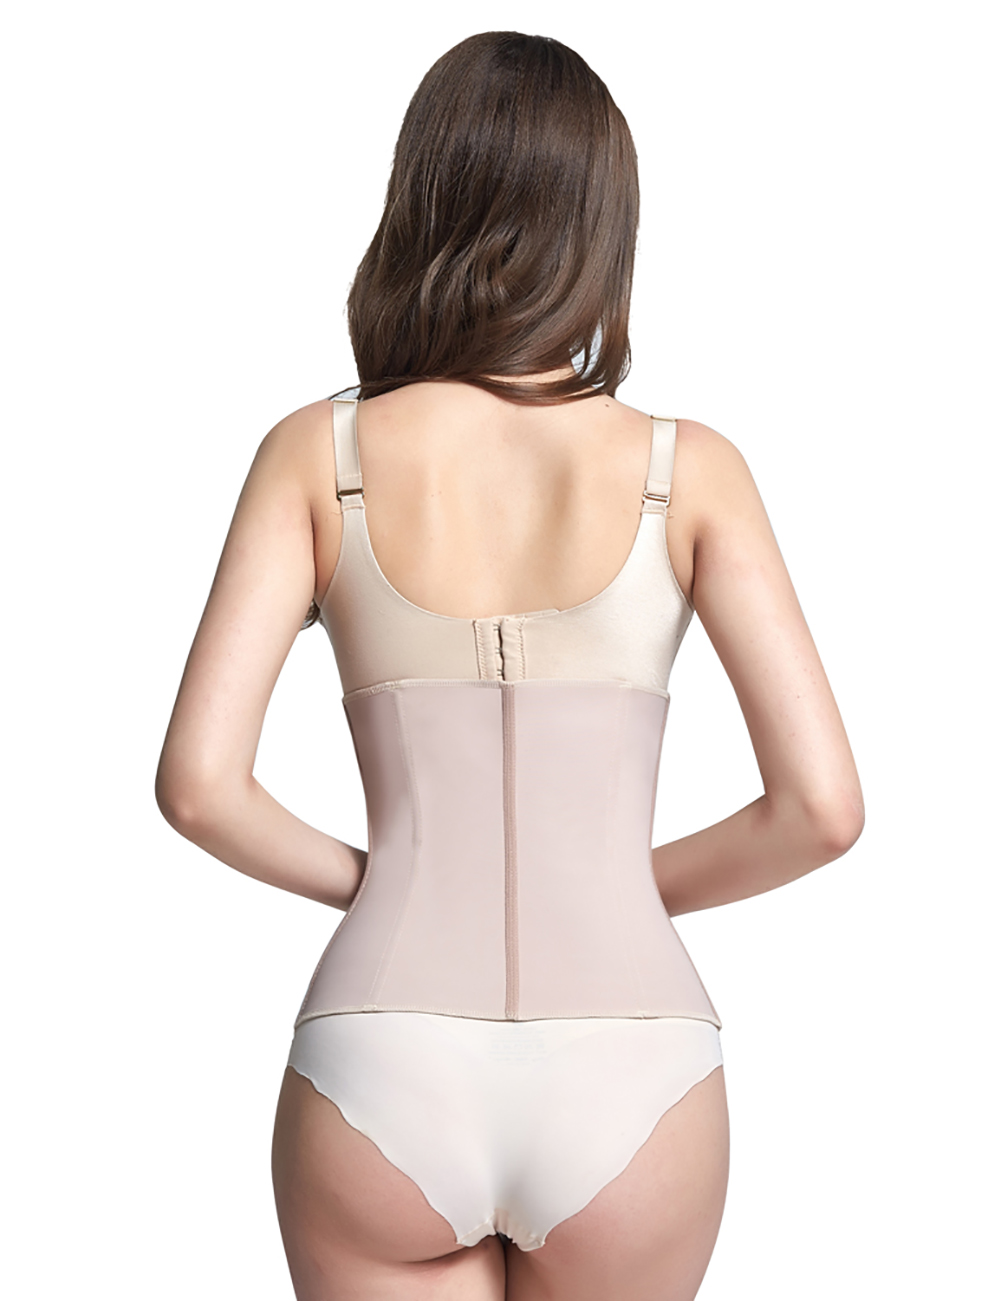 //cdn.affectcloud.com/feelingirldress/upload/imgs/Shapewear/Waist_Trainer/LB4962/LB4962-201912205dfc6a347c691.jpg